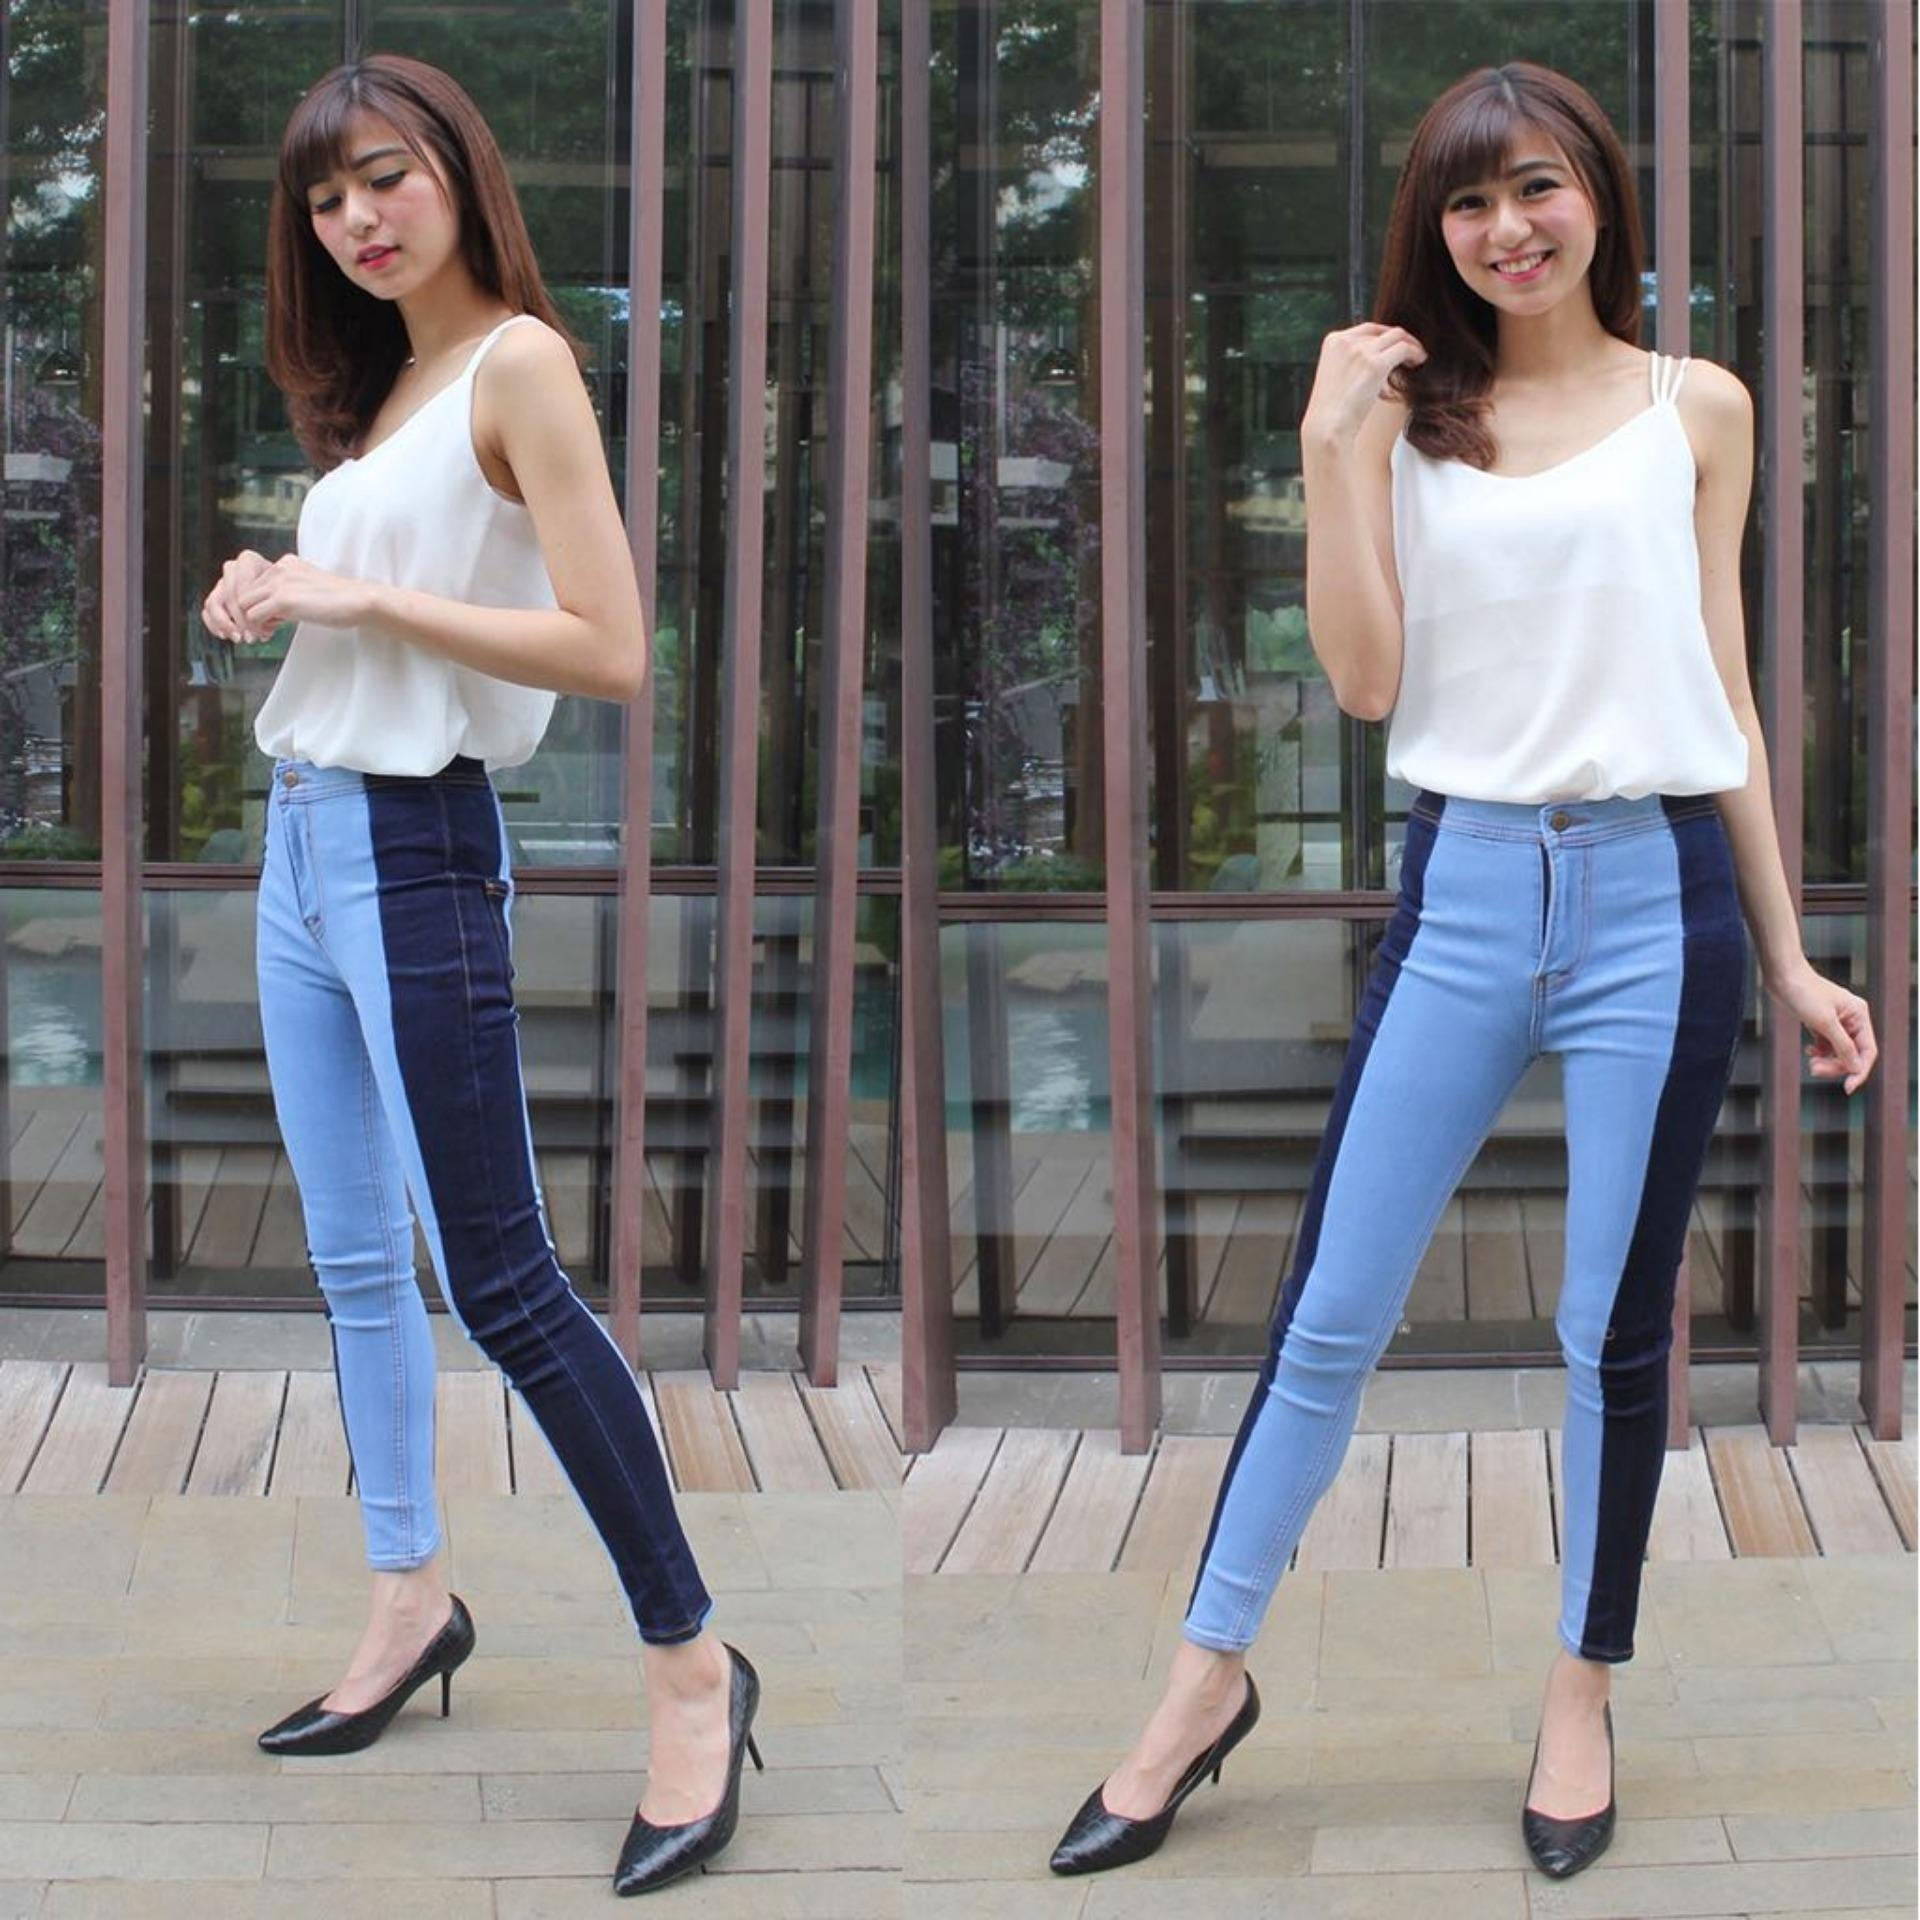 Vrichel Collection Celana Jeans / Celana Panjang Highwaist Skinny Jeans Pinny HW LIST Premium